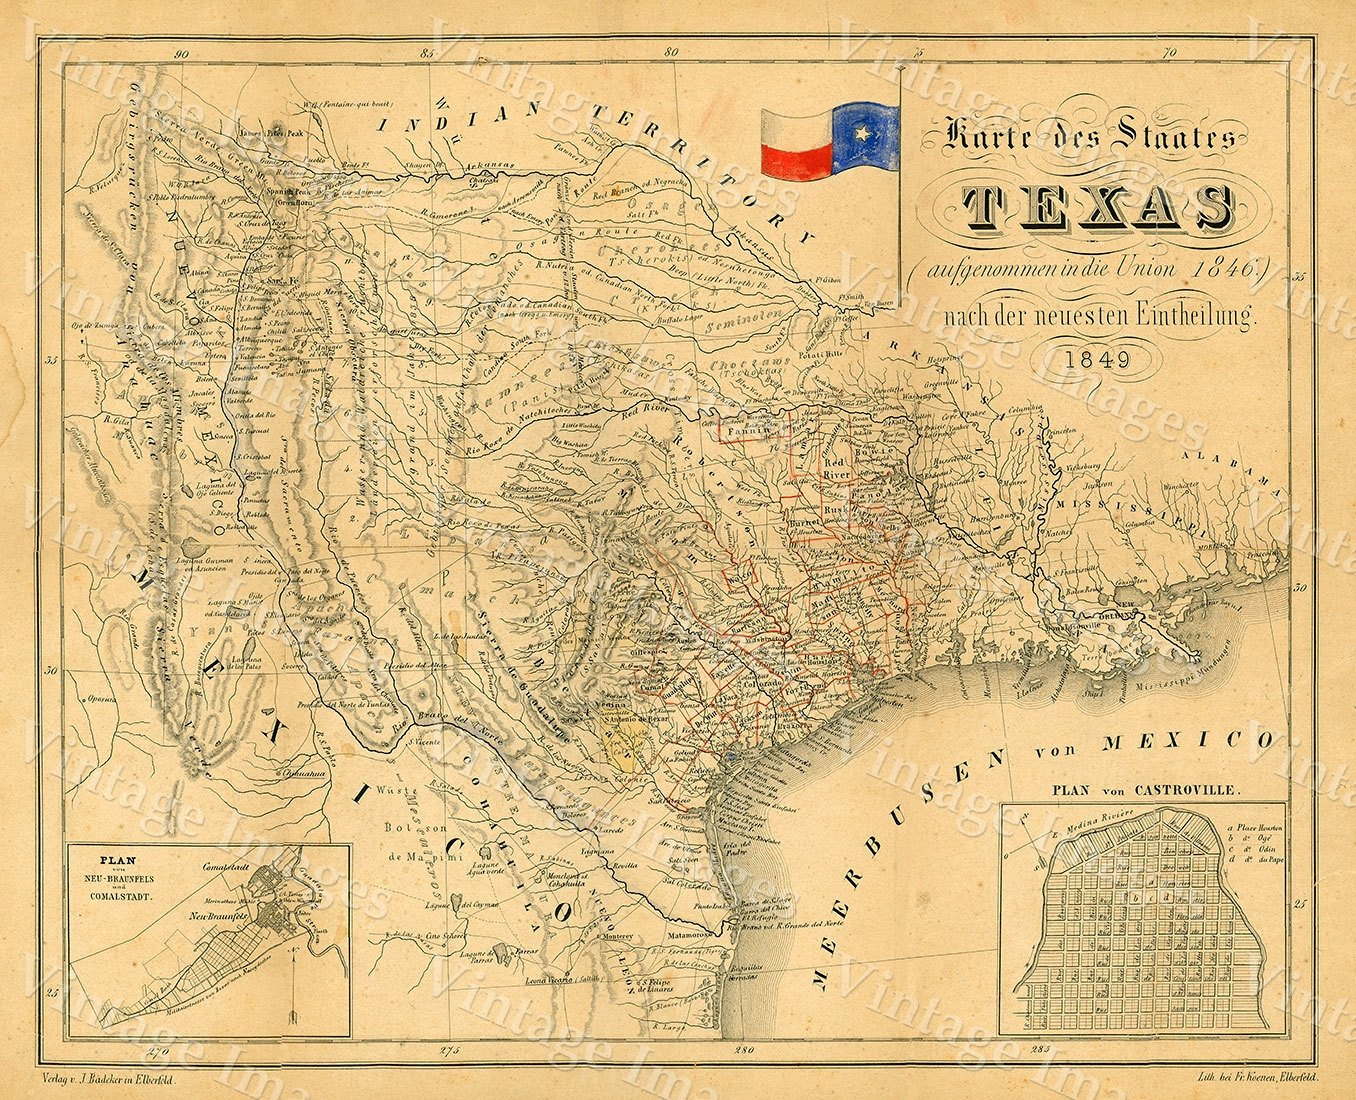 1849 Map Of Texas Old Texas Map, Texas, Map Of Texas, Vintage - Old Texas Maps For Sale